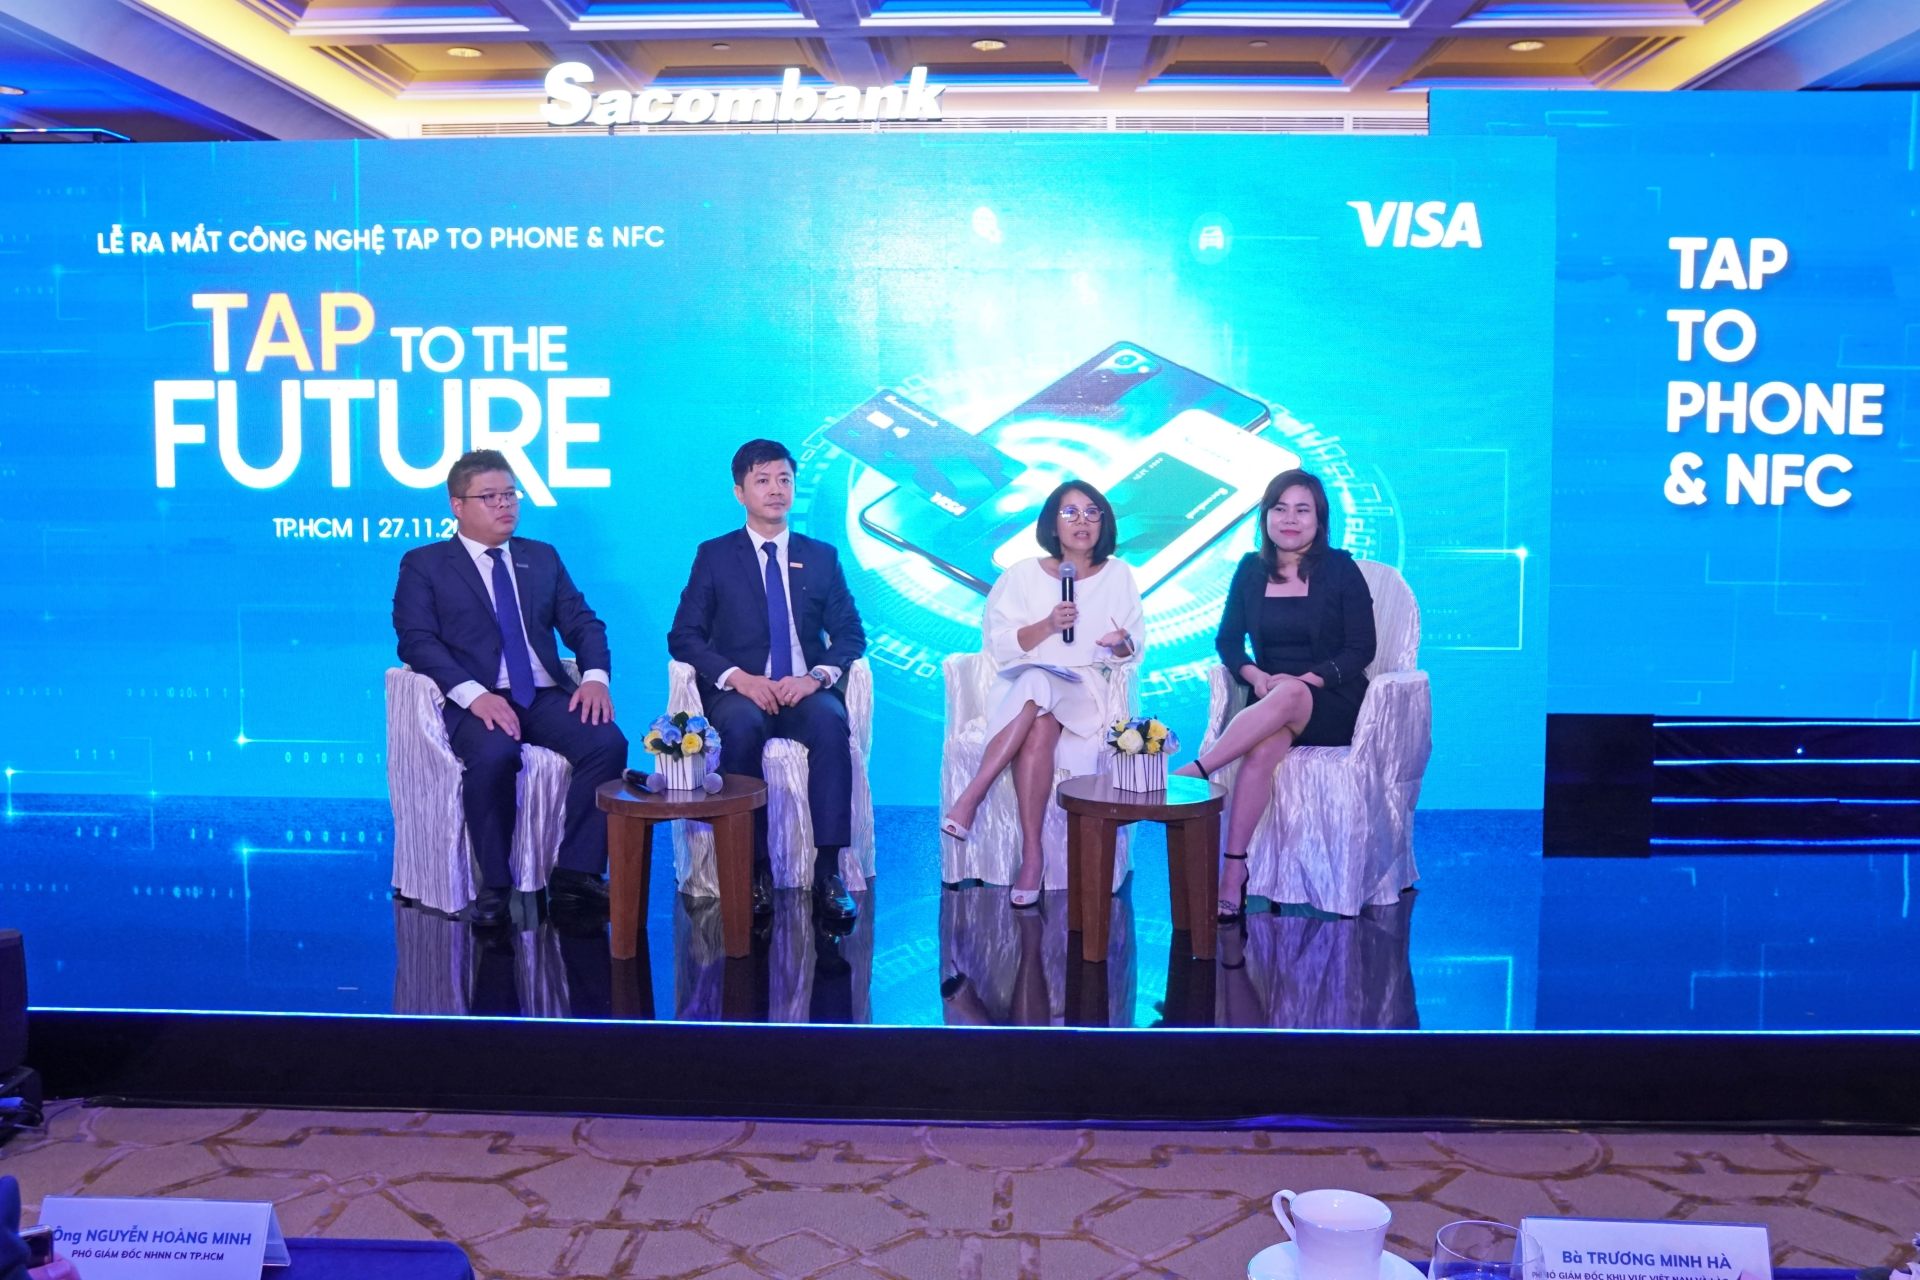 World's first launch of Visa Tap to Phone with Rapid Seller Onboarding